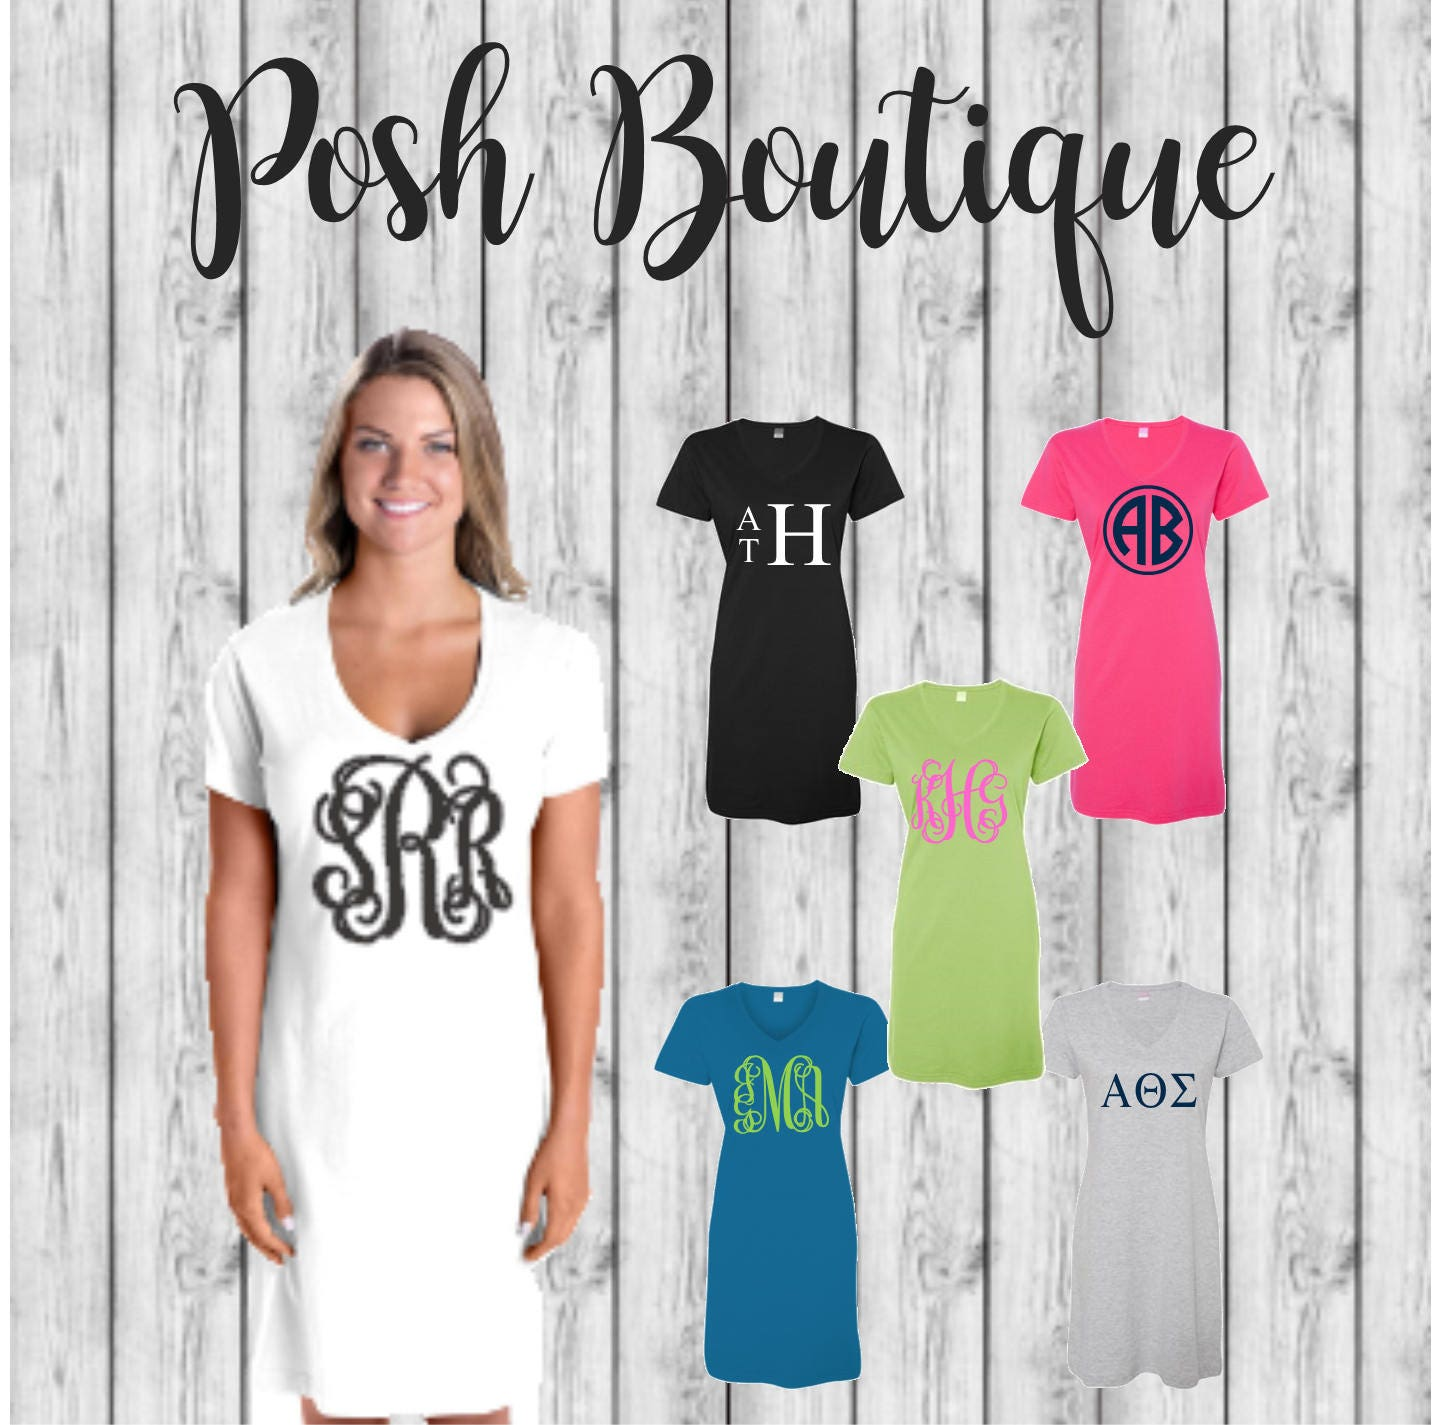 e89e2830c0 ... Custom Swimsuit Cover up, Bridesmaid Gifts, Honeymoon, Bachelorette,  Monogram Gifts. gallery photo ...